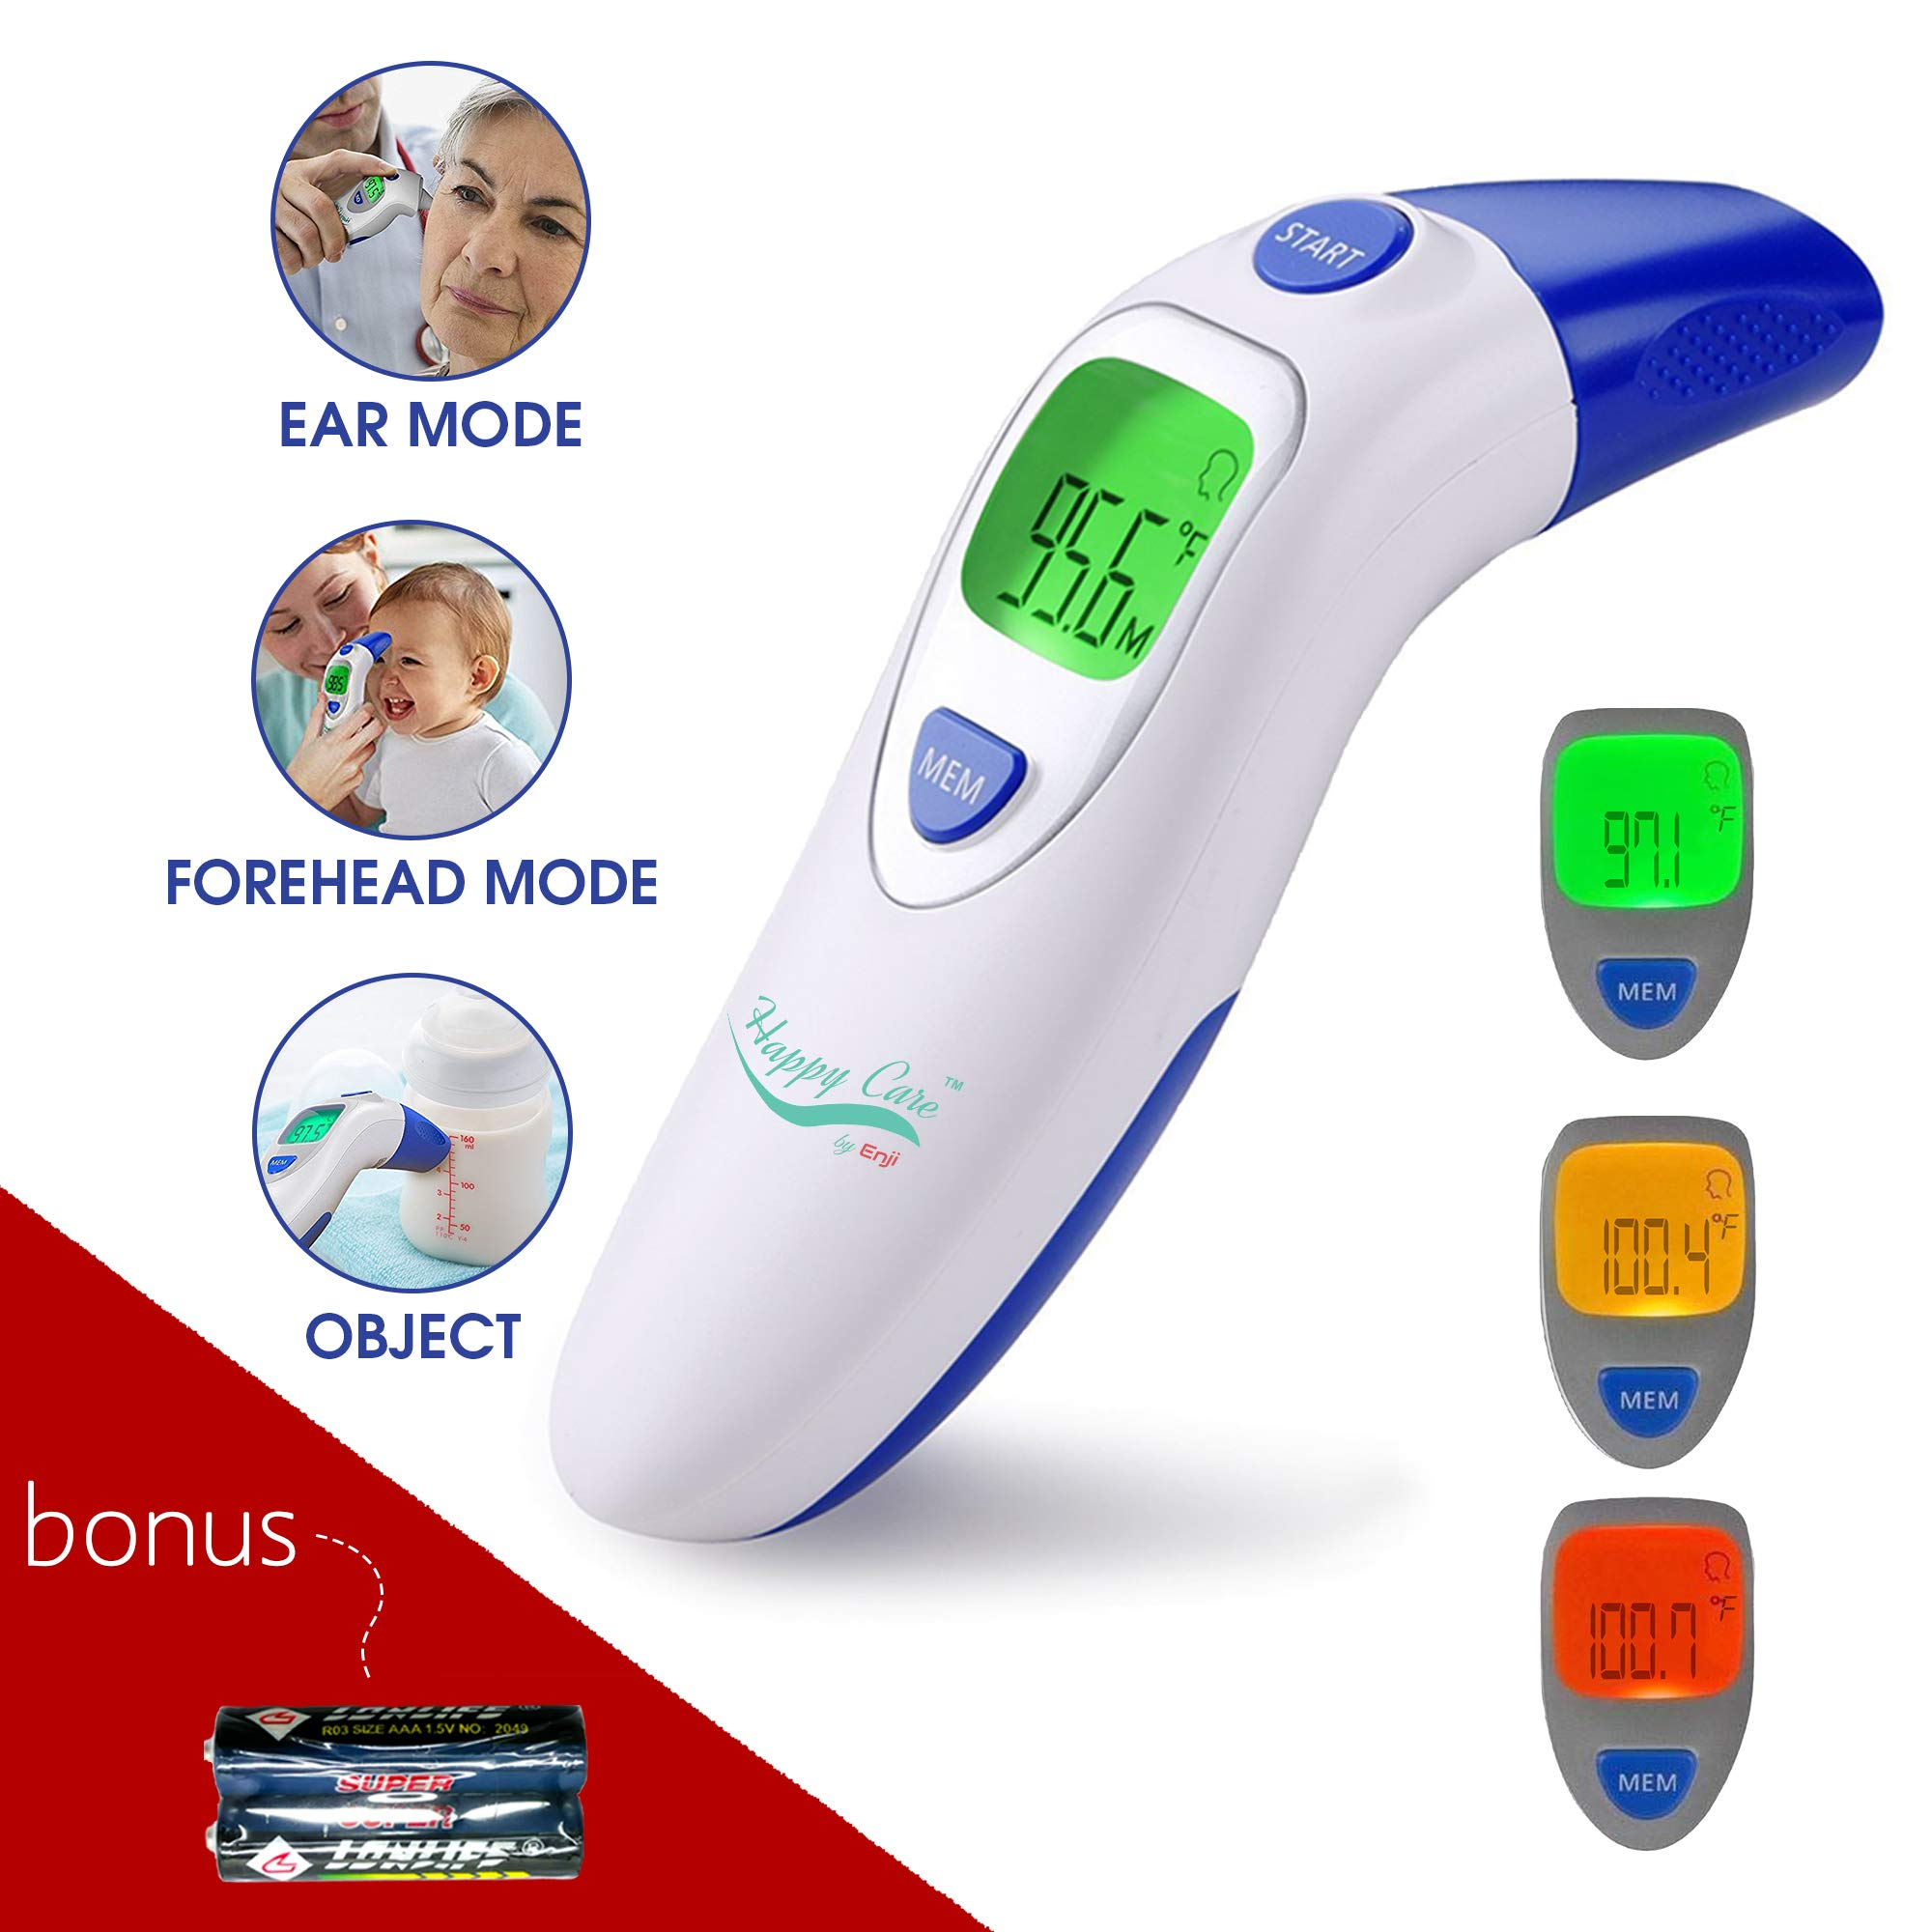 Baby, Children's, Adult Ear and Forehead Digital Thermometer - Temporal Electronic Infrared, Dual F & C Temperature Mode, Fast 1 Second Read, for Infants, Babies, Kids & Adults, Ear Termometro by HAPPY CARE BY ENJI